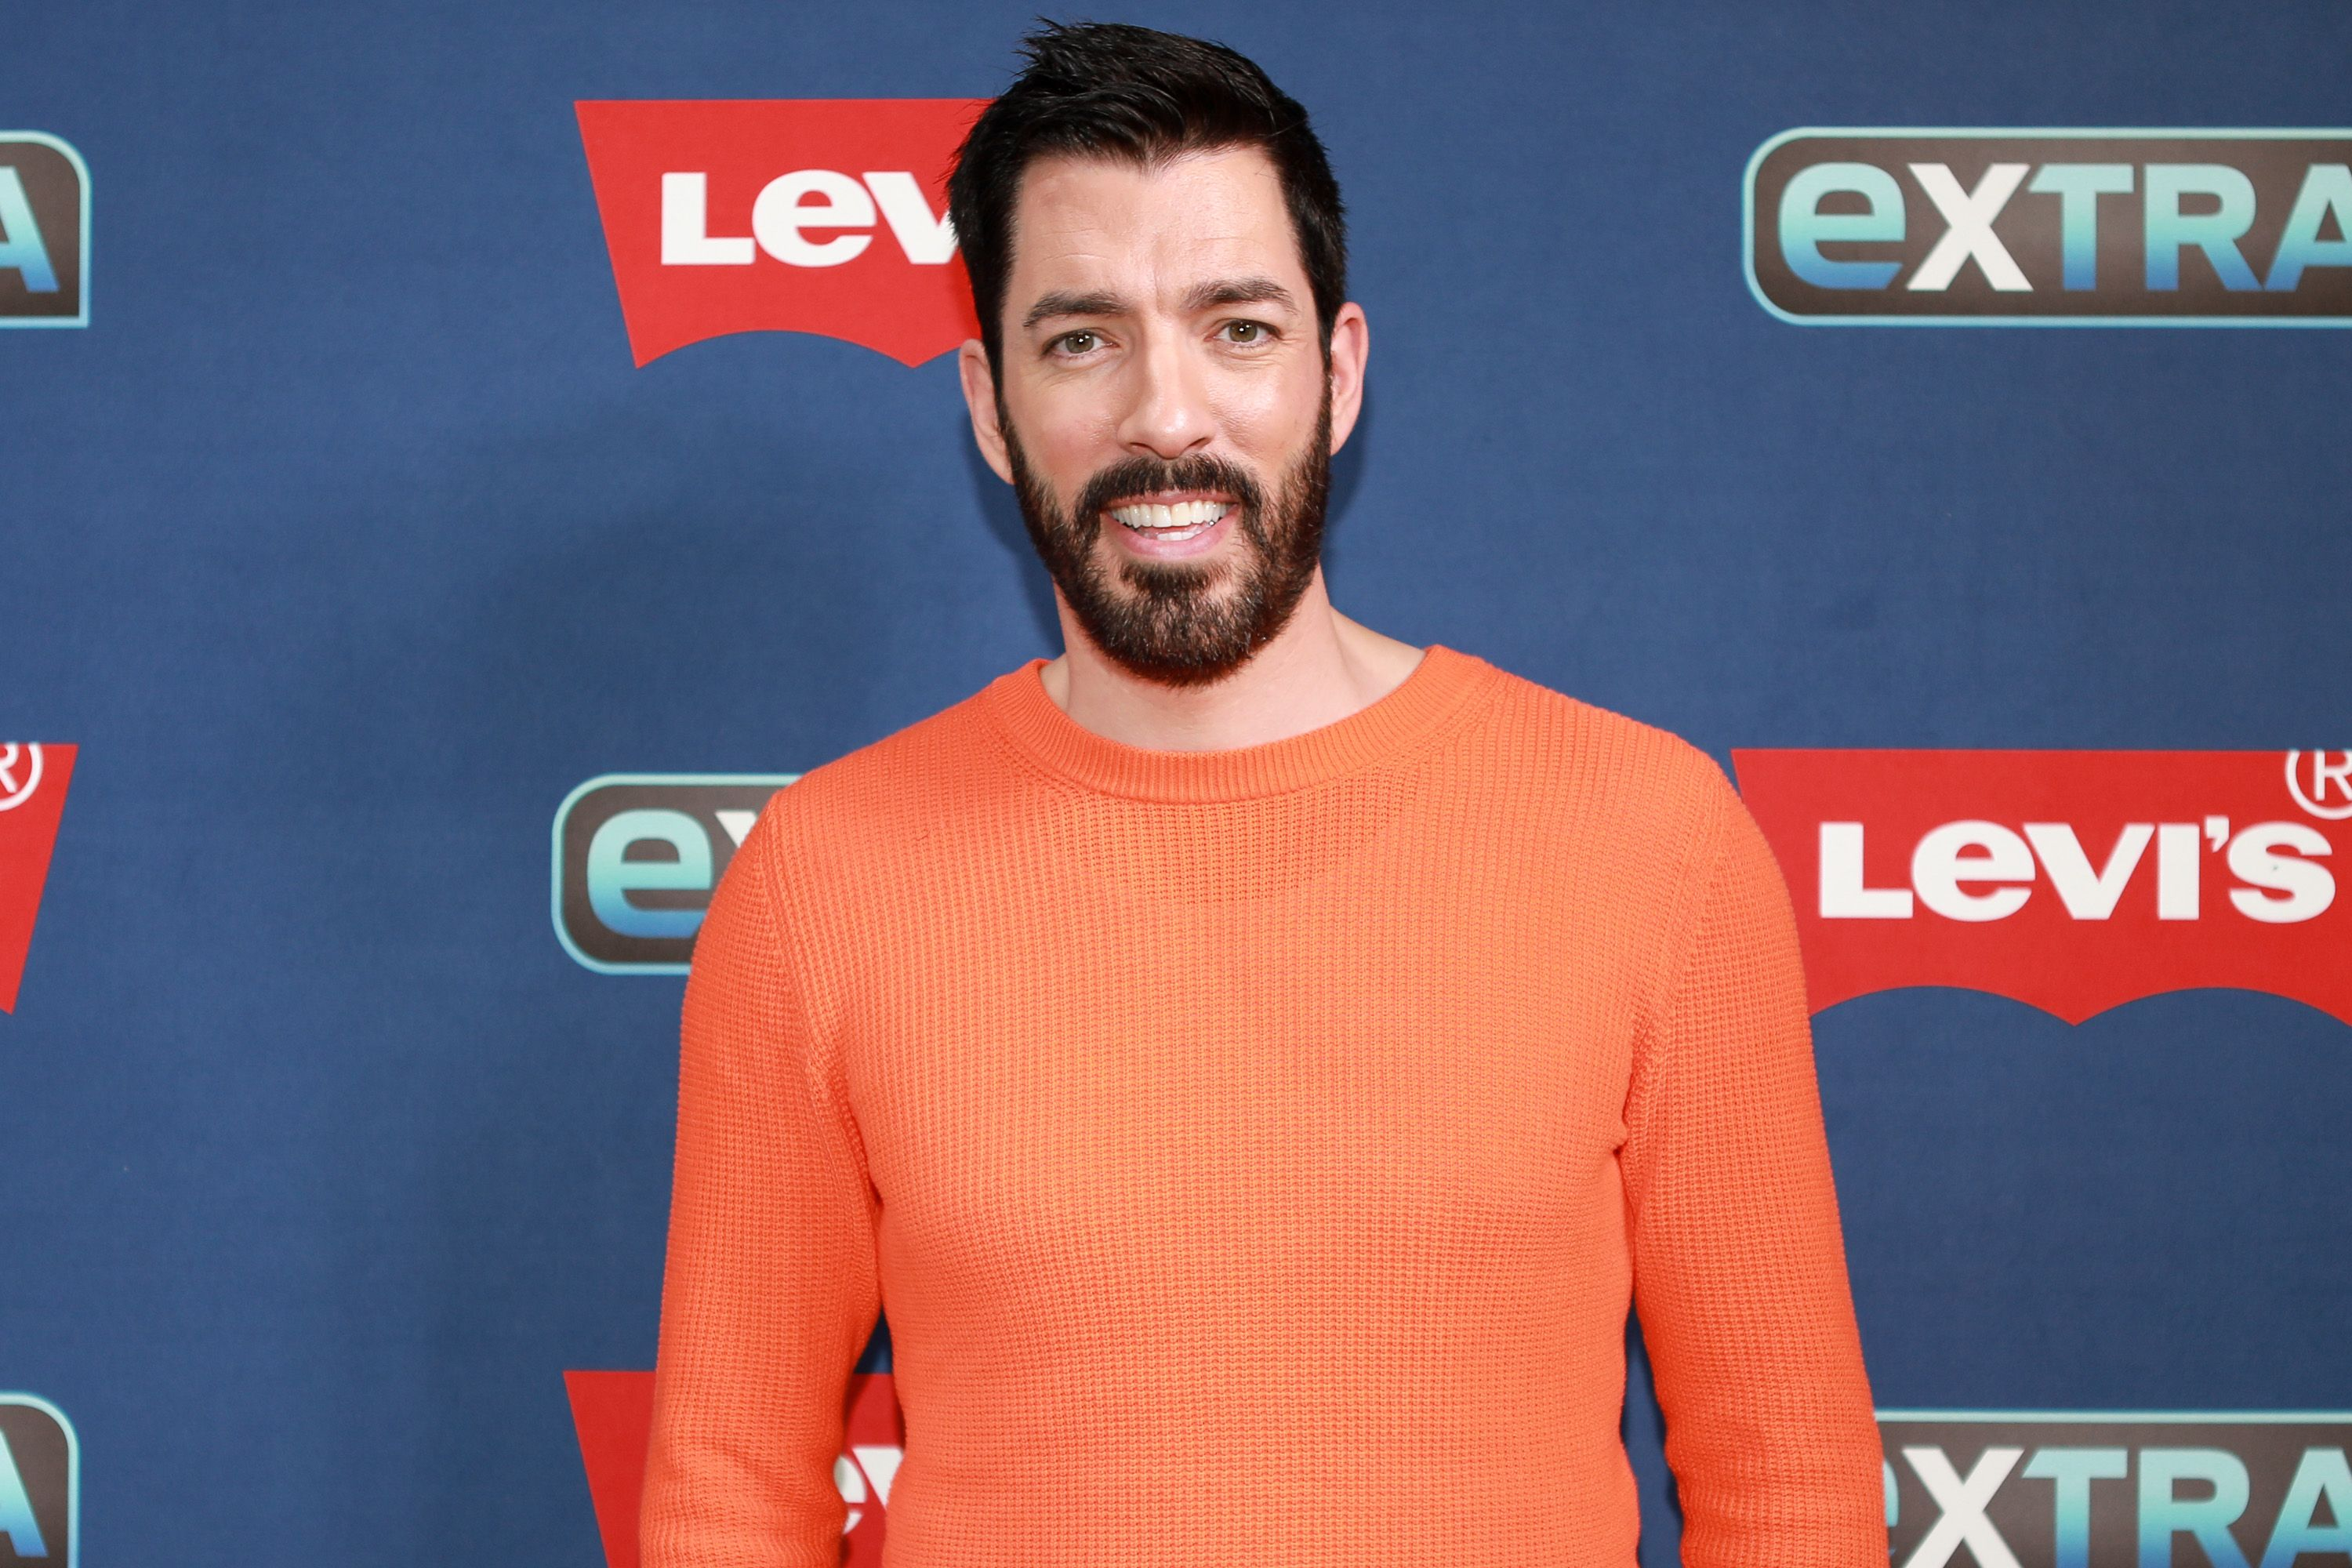 Jonathan Scott at The Levi's Store in New York City on September 10, 2019   Getty Images